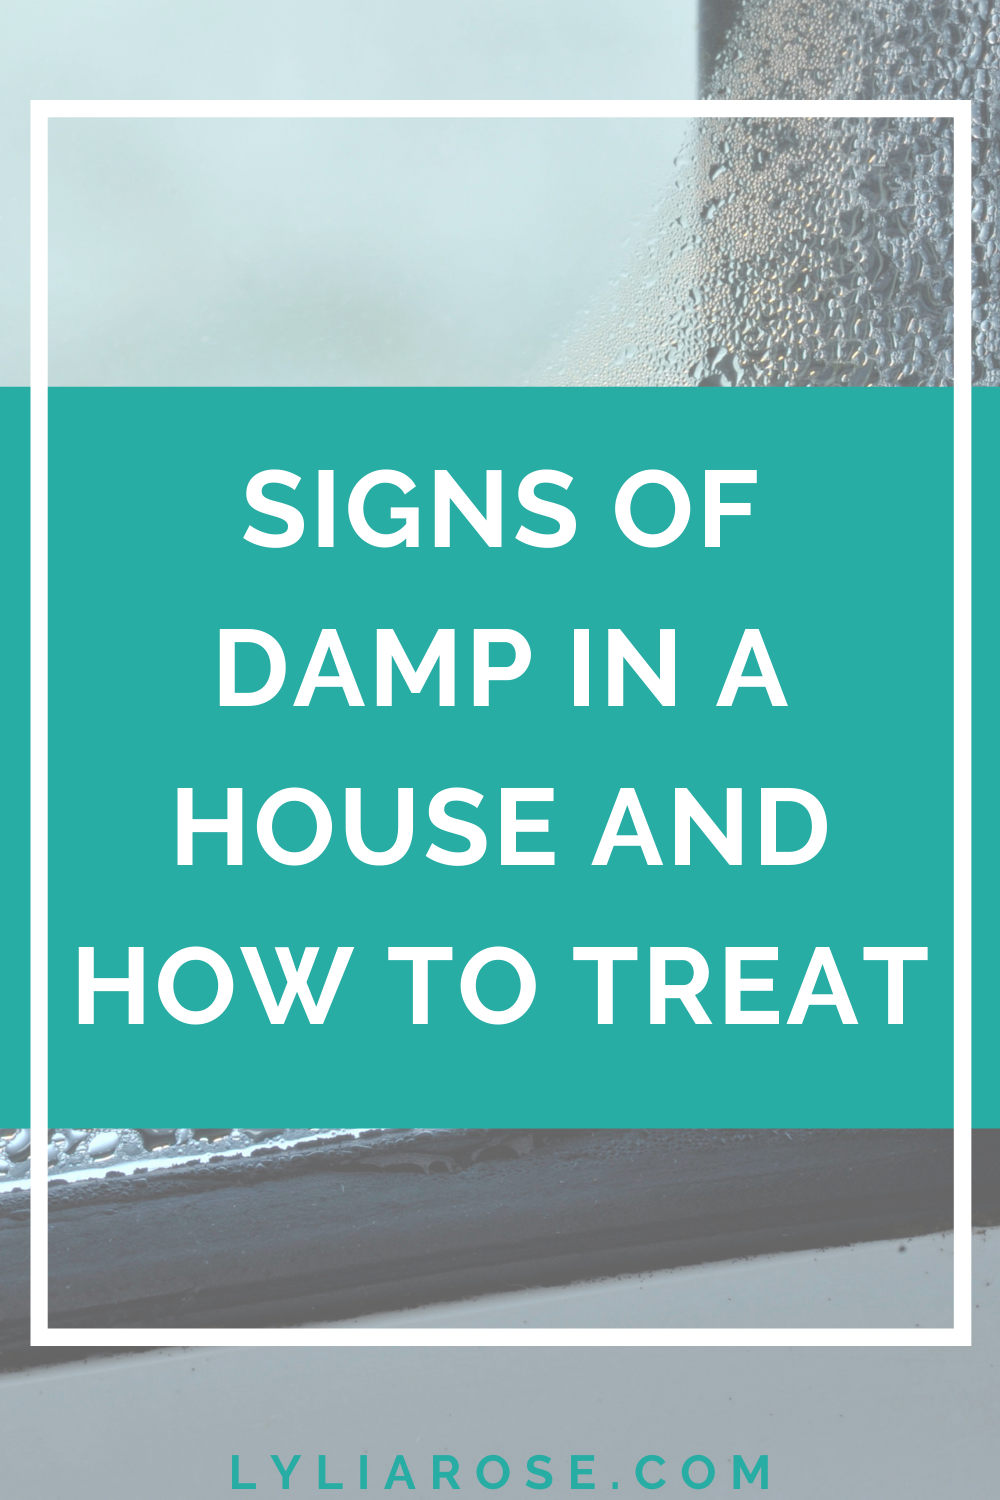 Signs of damp in a house and how to treat